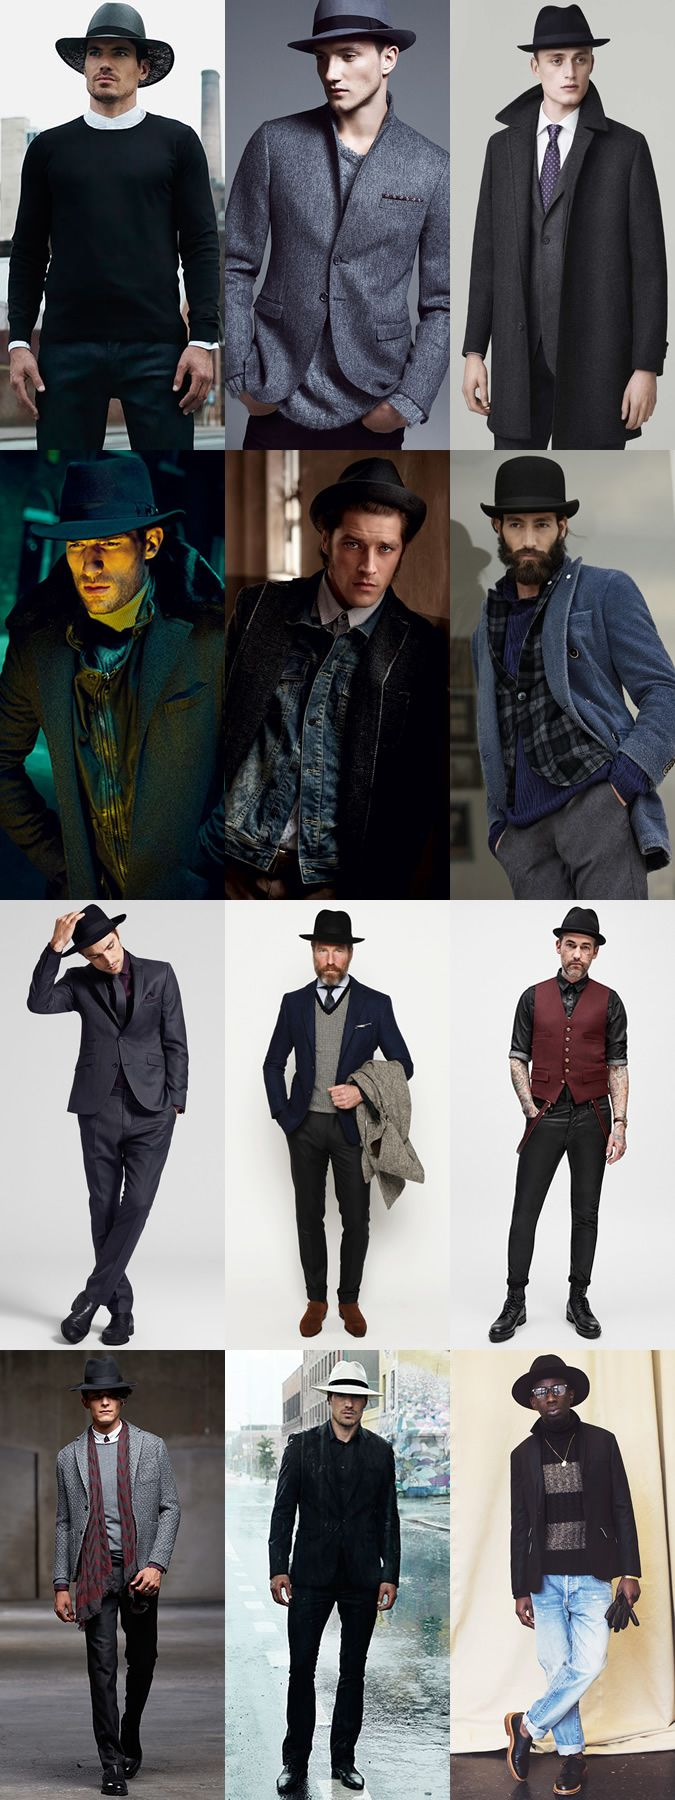 Men's Structured Hats - Fedora, Trilby, Bowler and Pork Pie - Autumn/Winter Outfit Inspiration Lookbook